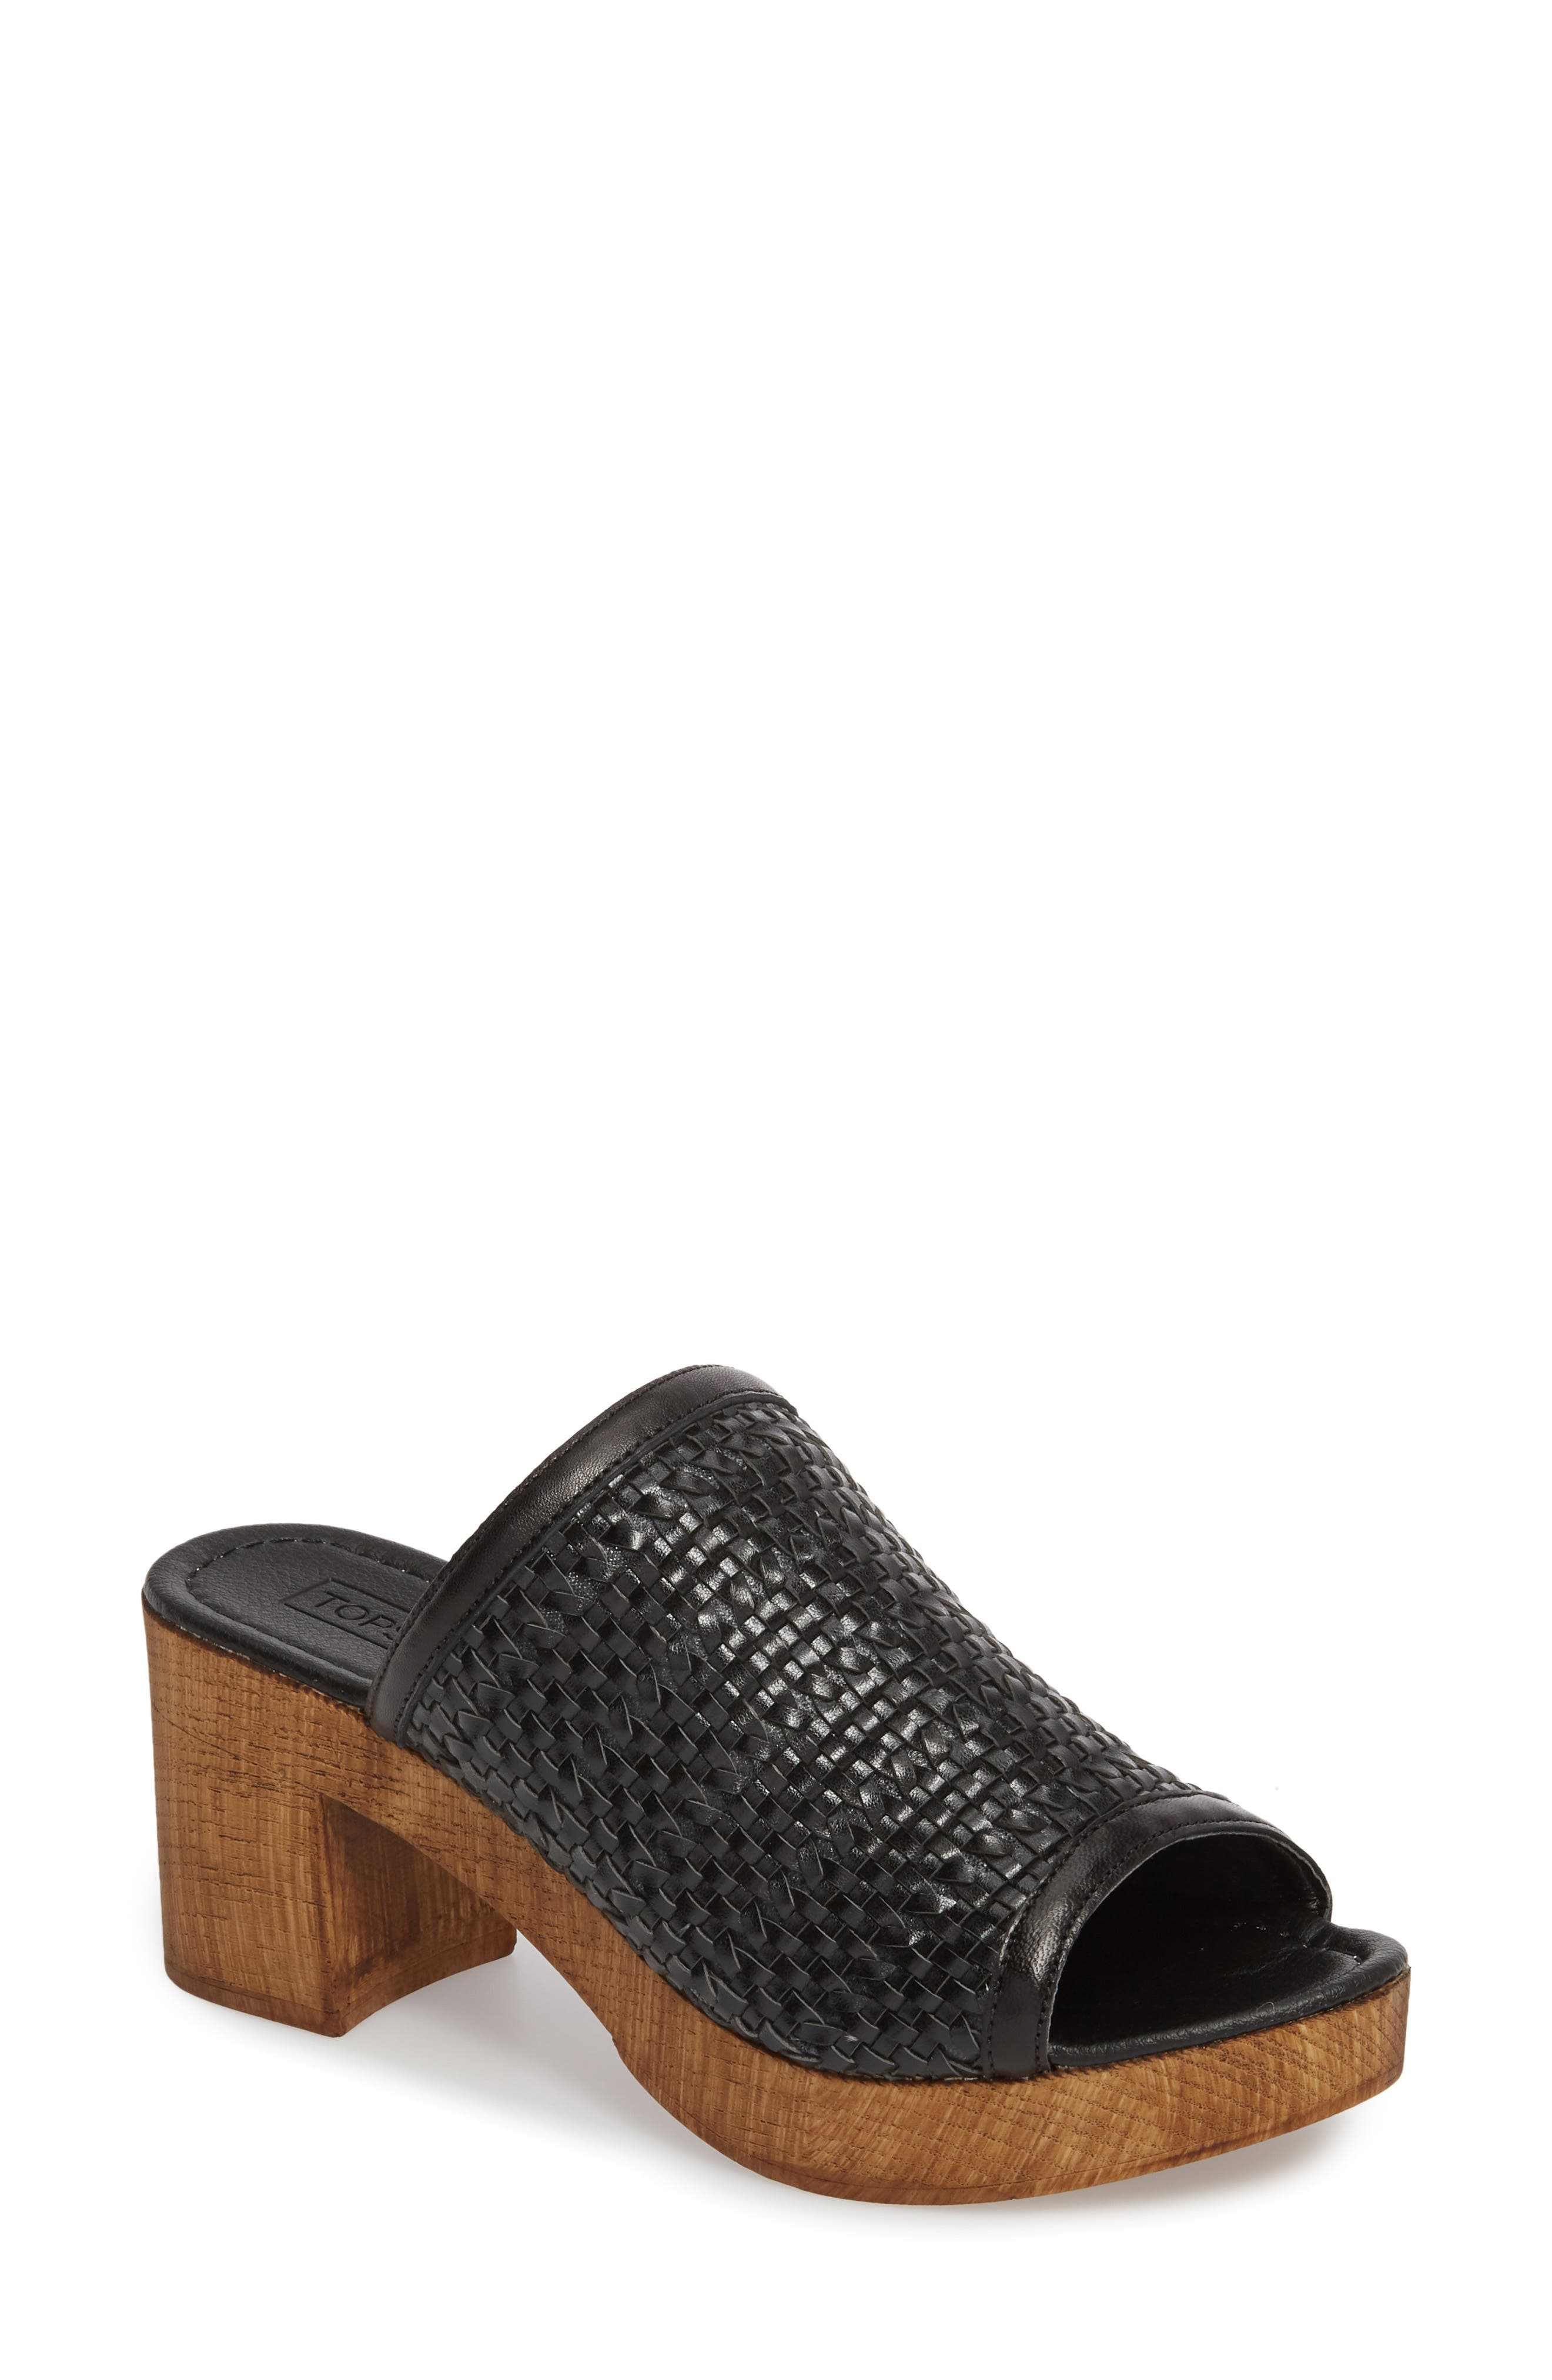 Womens Shoes Mules Amp